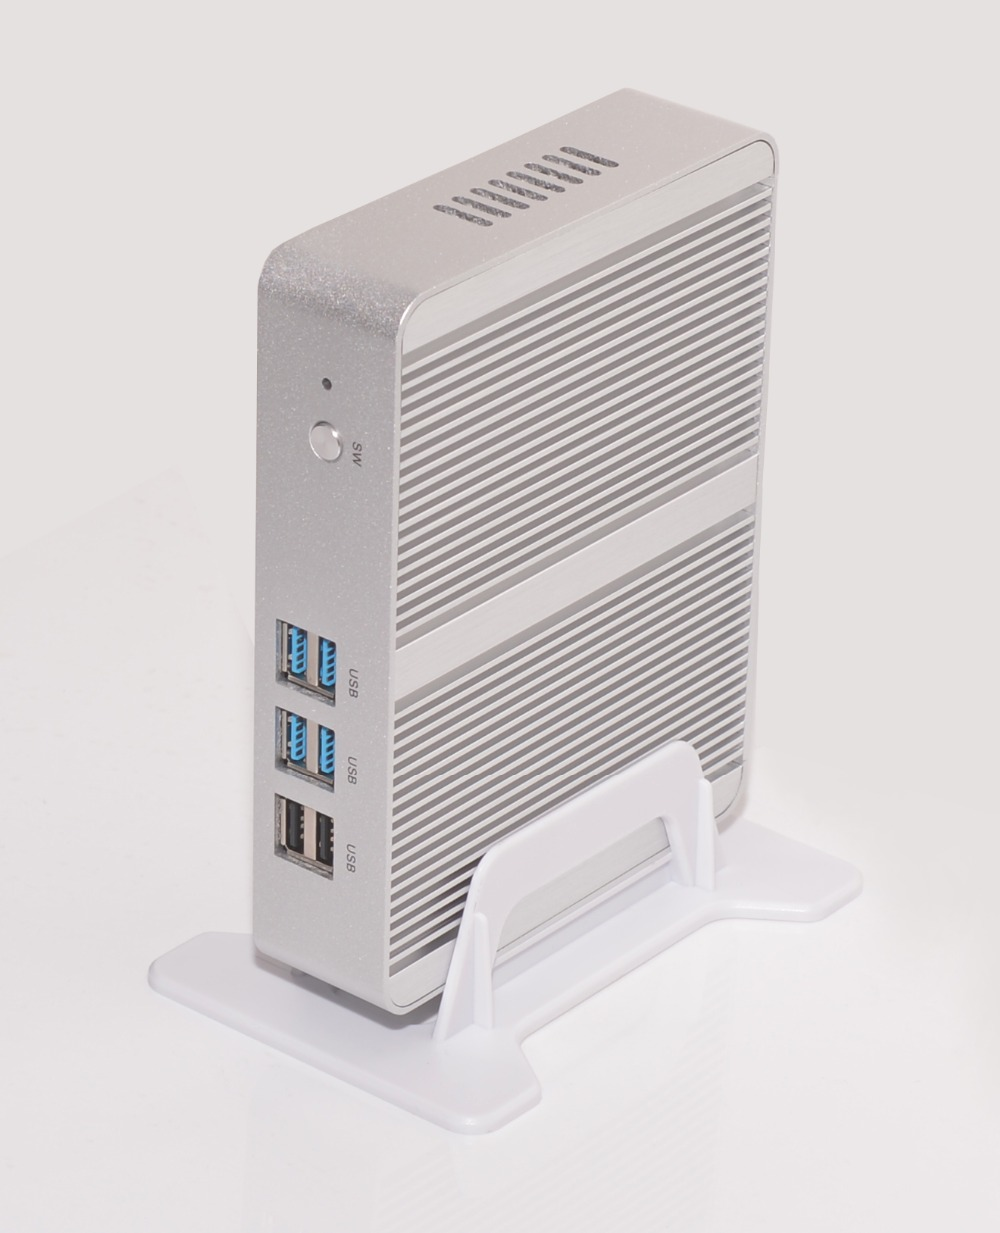 Promotion Cheap Fanless Core i3 Mini PC M325/M330  Core i3 4005U 5005U Dual Display,Low power Silver Small computerPromotion Cheap Fanless Core i3 Mini PC M325/M330  Core i3 4005U 5005U Dual Display,Low power Silver Small computer